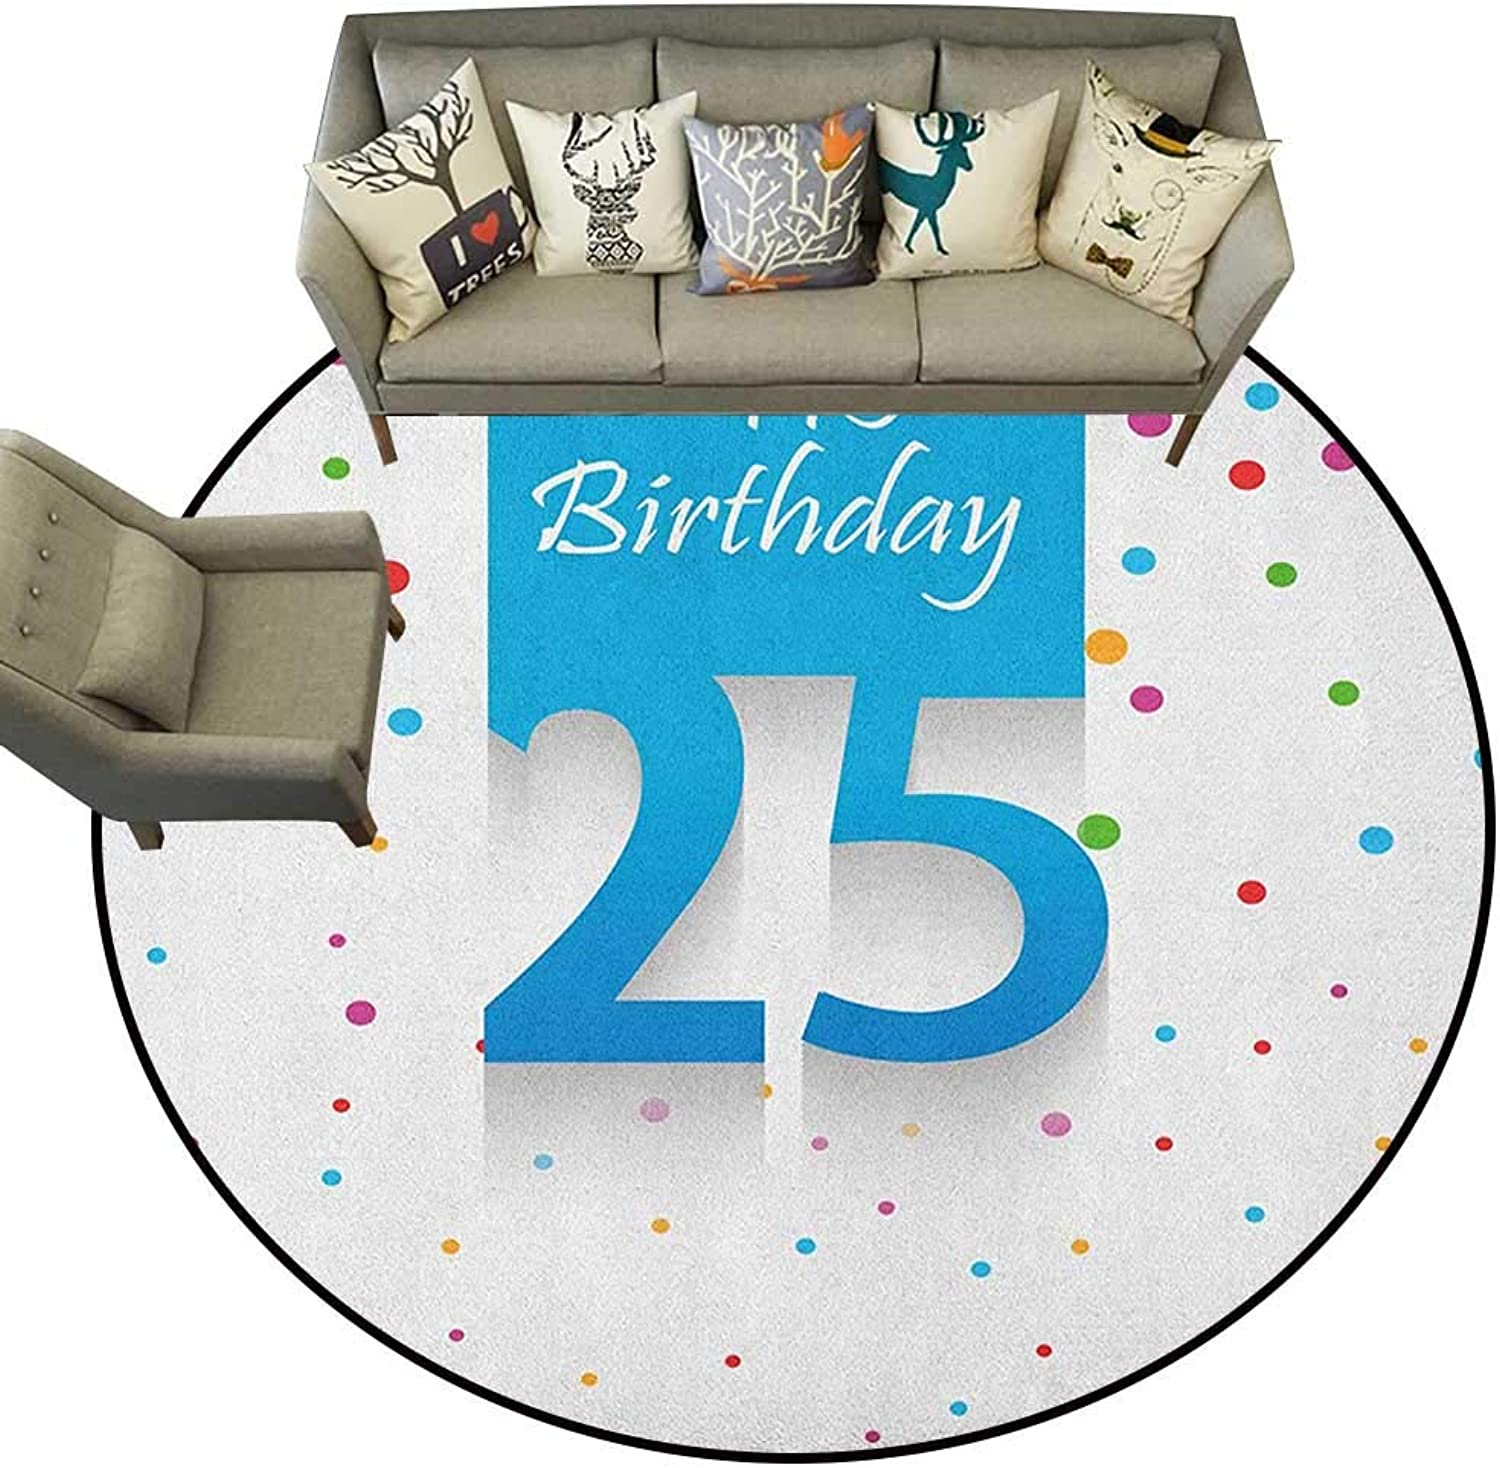 25th Birthday,Rugs for Bedroom Big and Small Polka Dots Confetti Rain and bluee Square Hand Written Print D36 Floor Mat Home Decoration Supplies